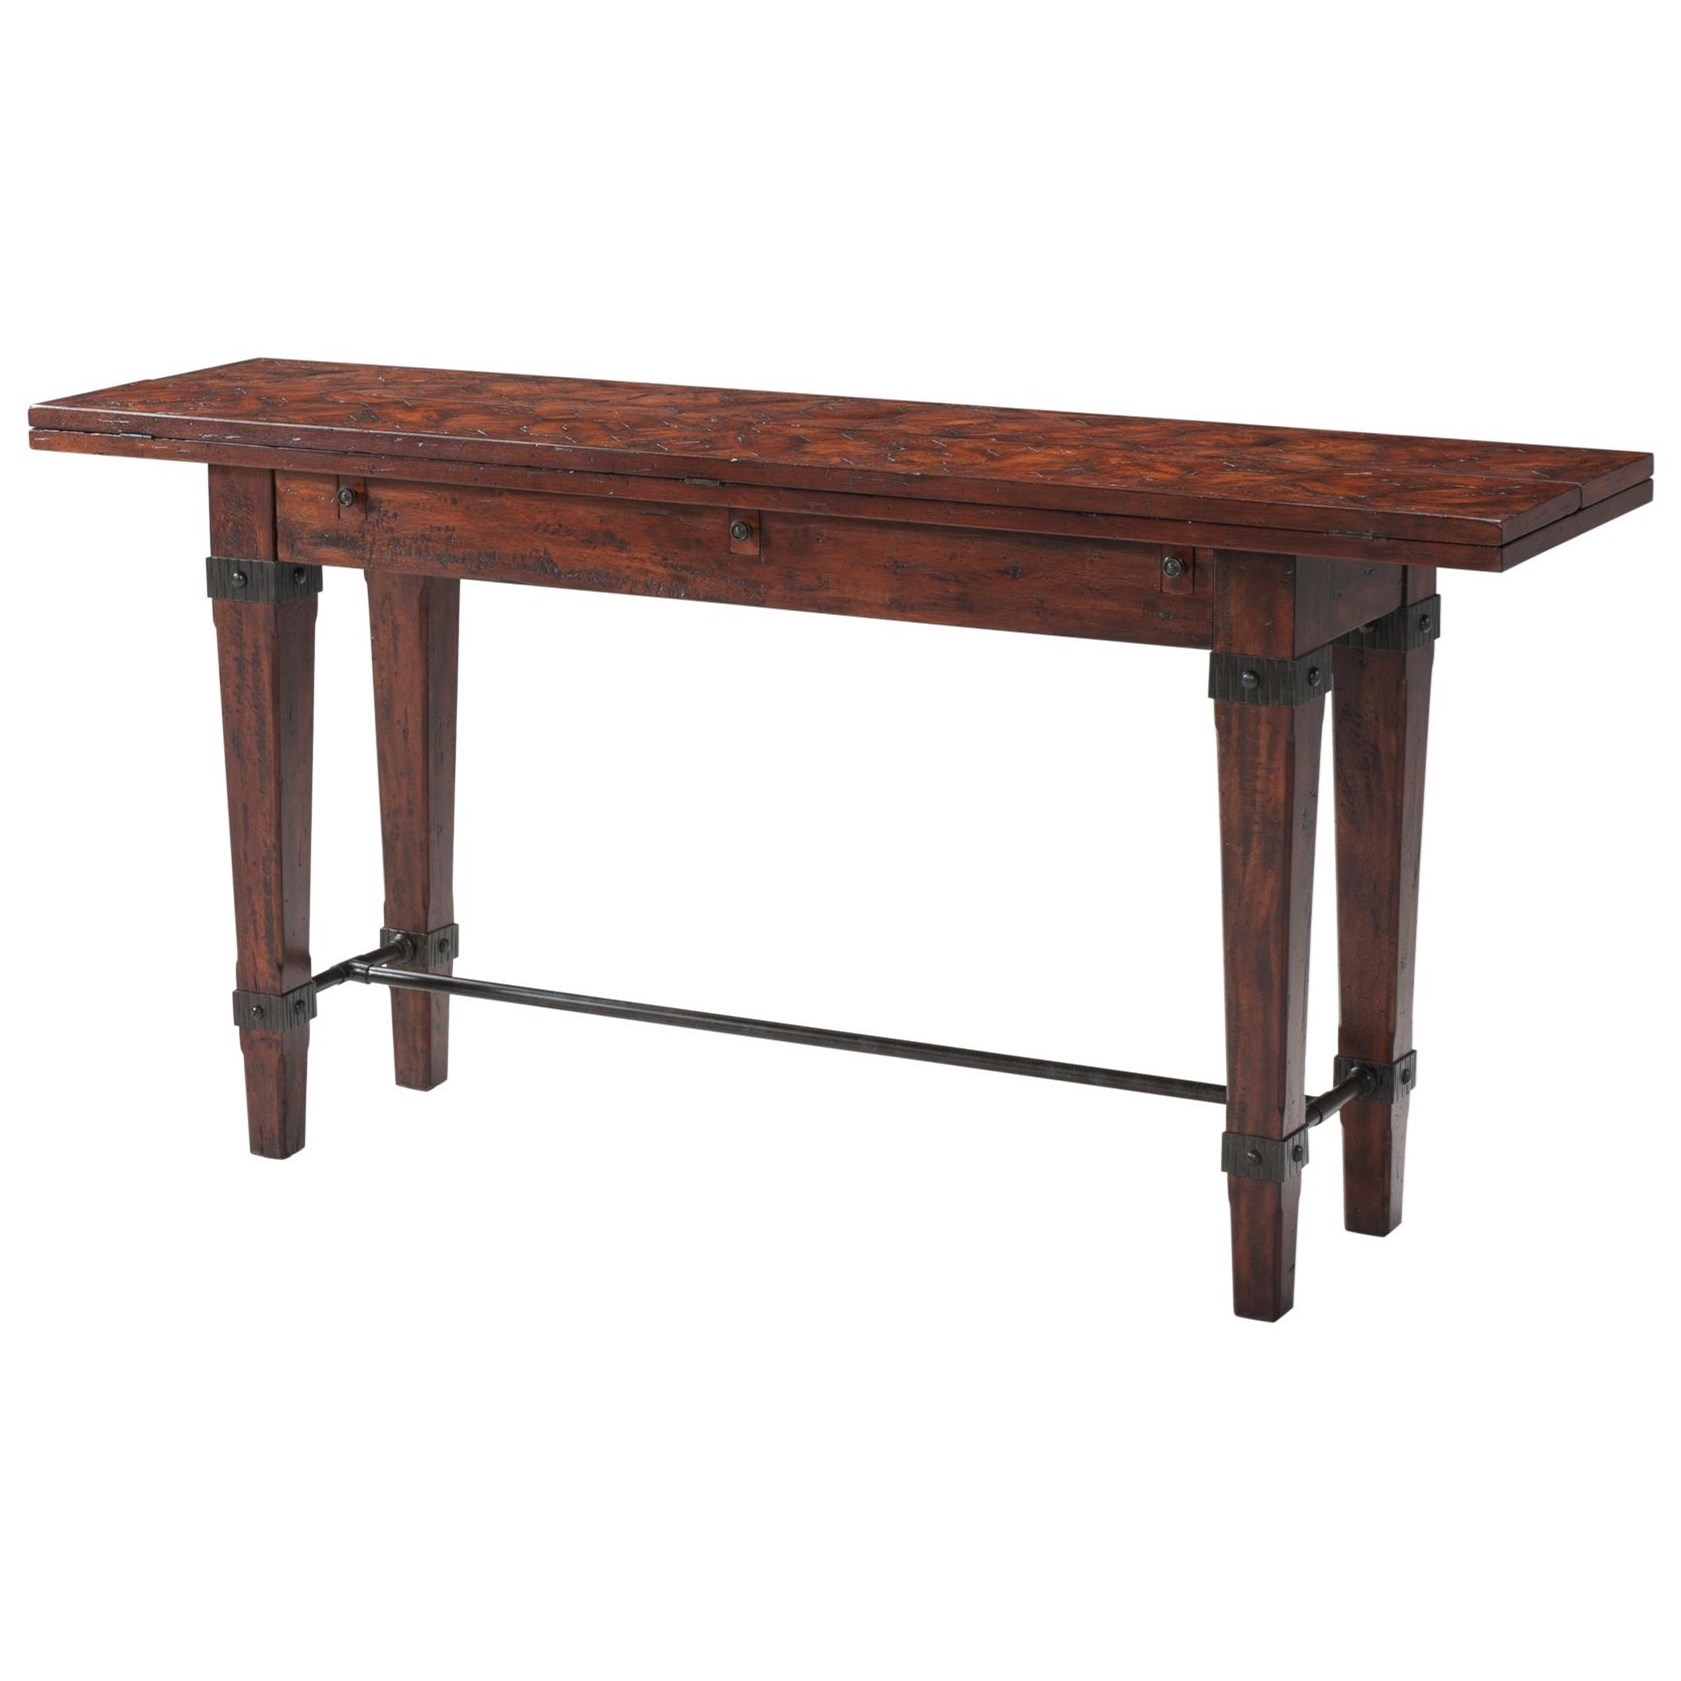 Castle Bromwich Purposes Sofa Table by Theodore Alexander at Baer's Furniture